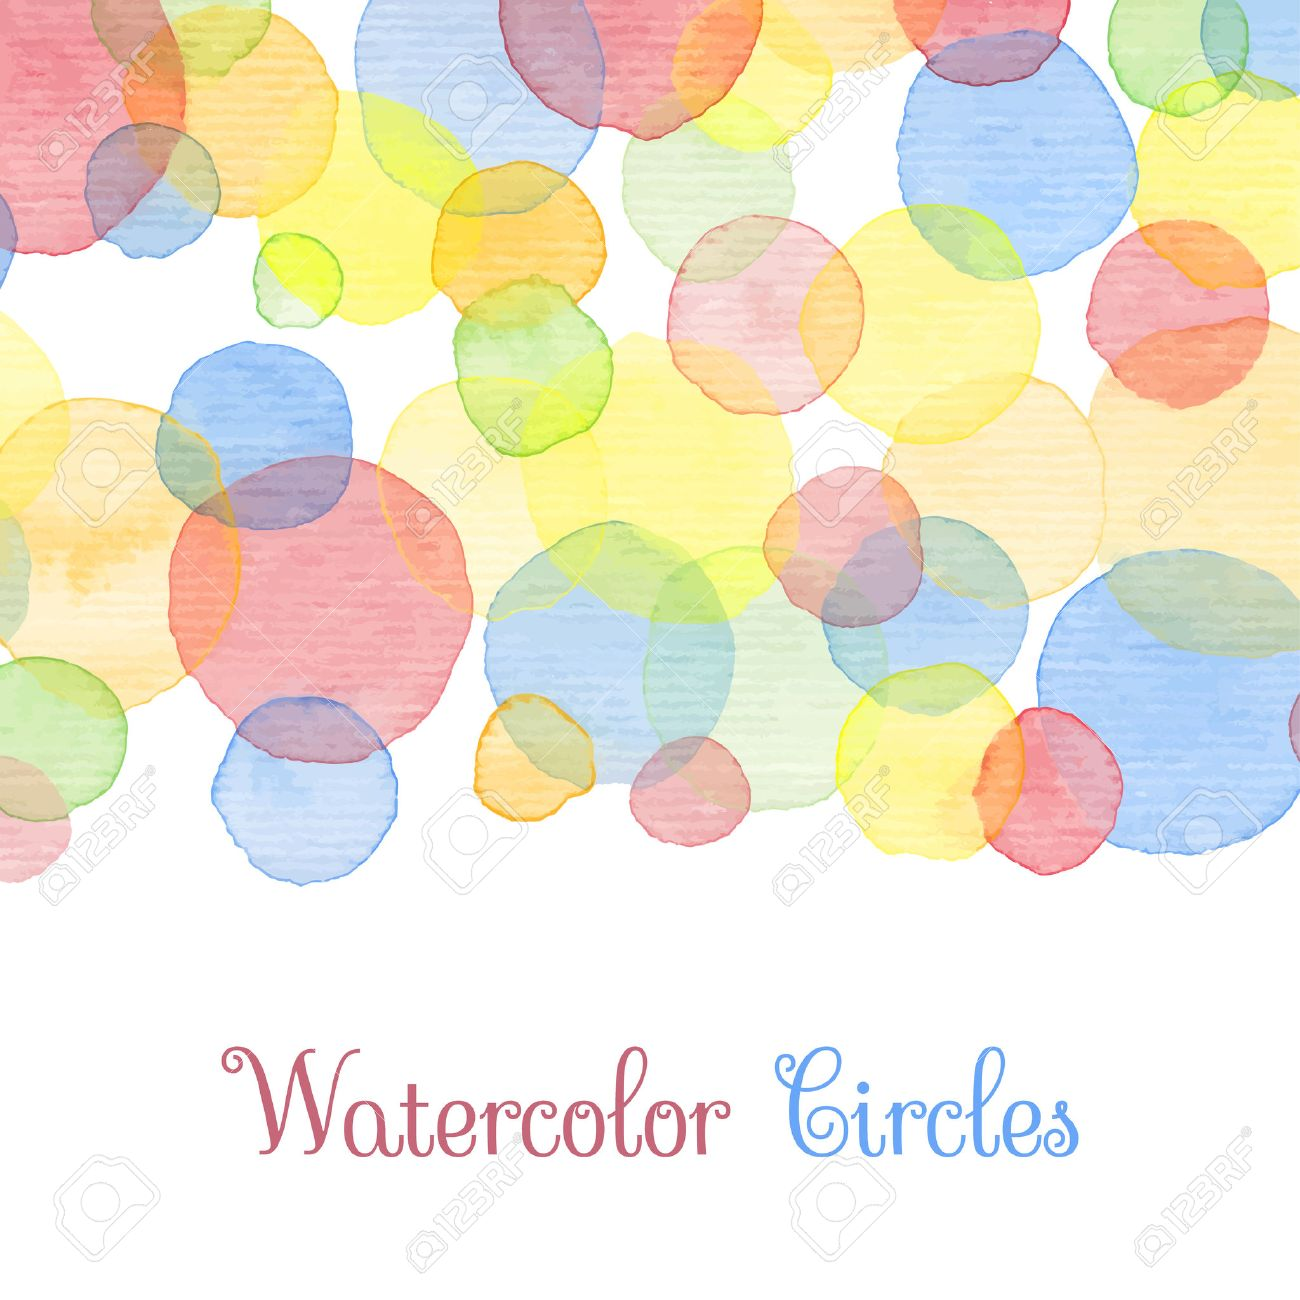 Hand painted water color circles with text cute decorative template cute decorative template bright colorful border panels great for baby shower invitation birthday card scrapbooking etc vector illustration stopboris Images